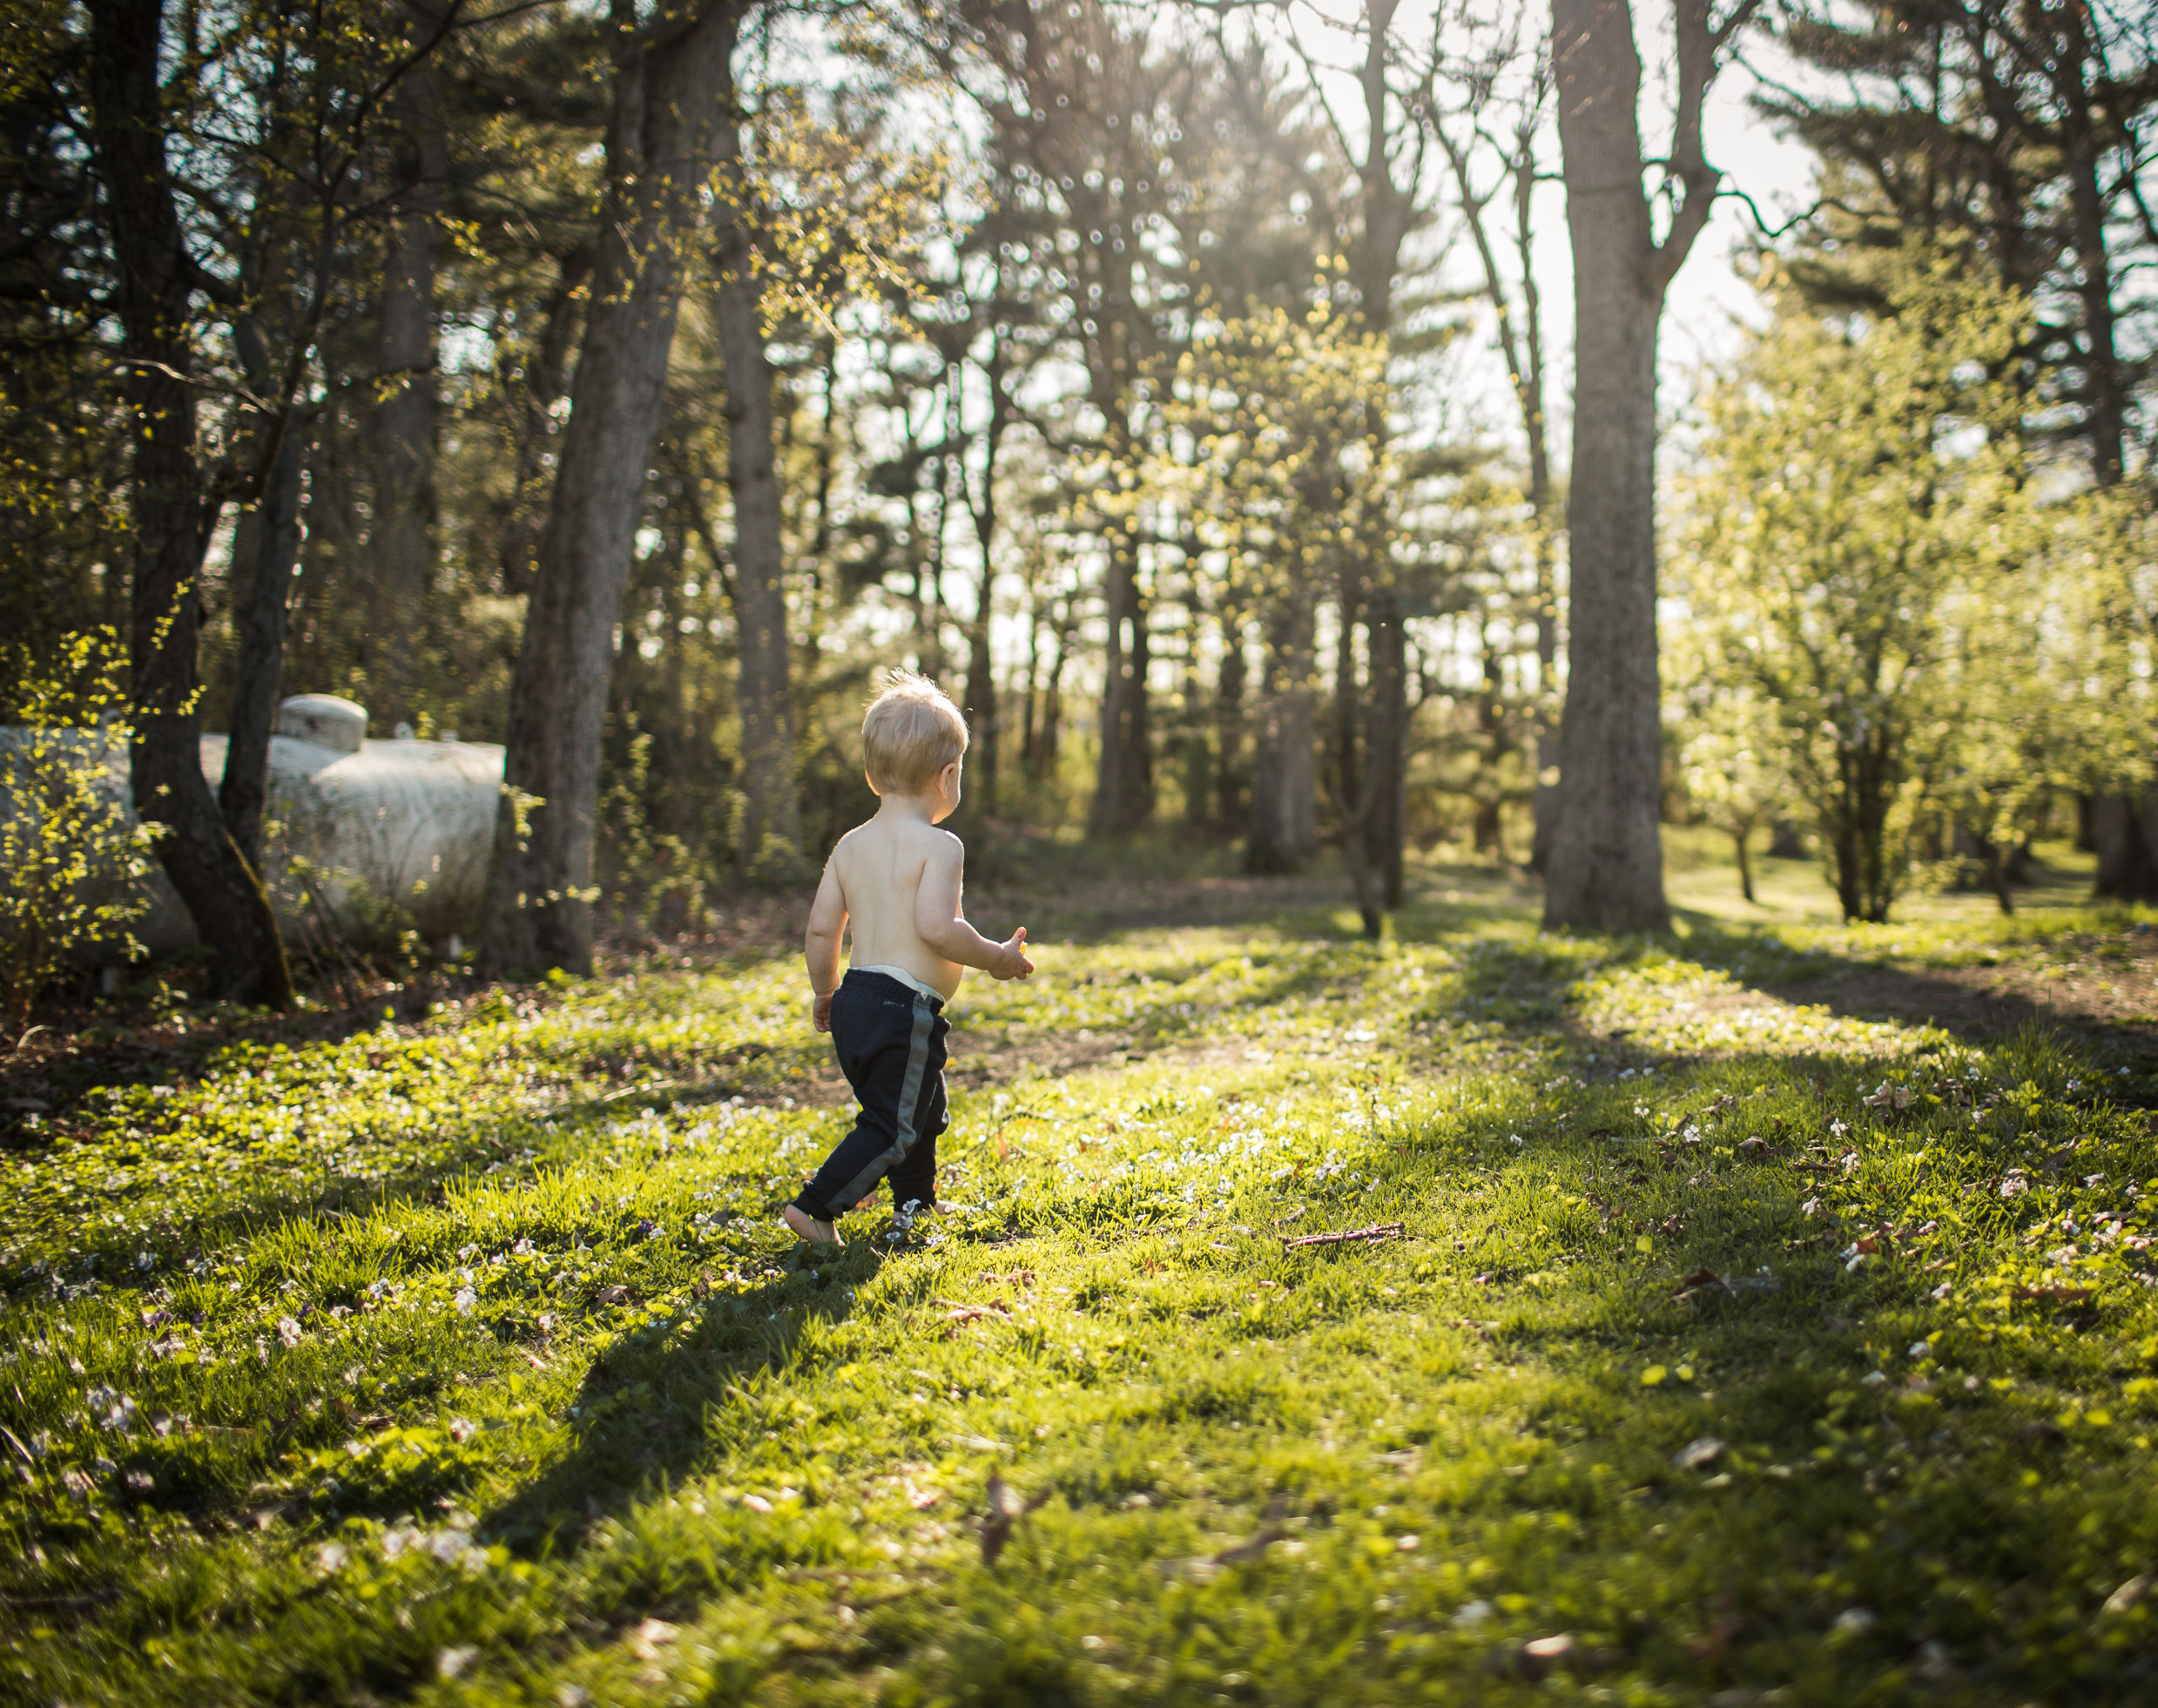 Exploring, Connected, Powerful, Lifestyle Family Sunset Session, Farm, Indiana, Laura Duggleby Photography-1.JPG